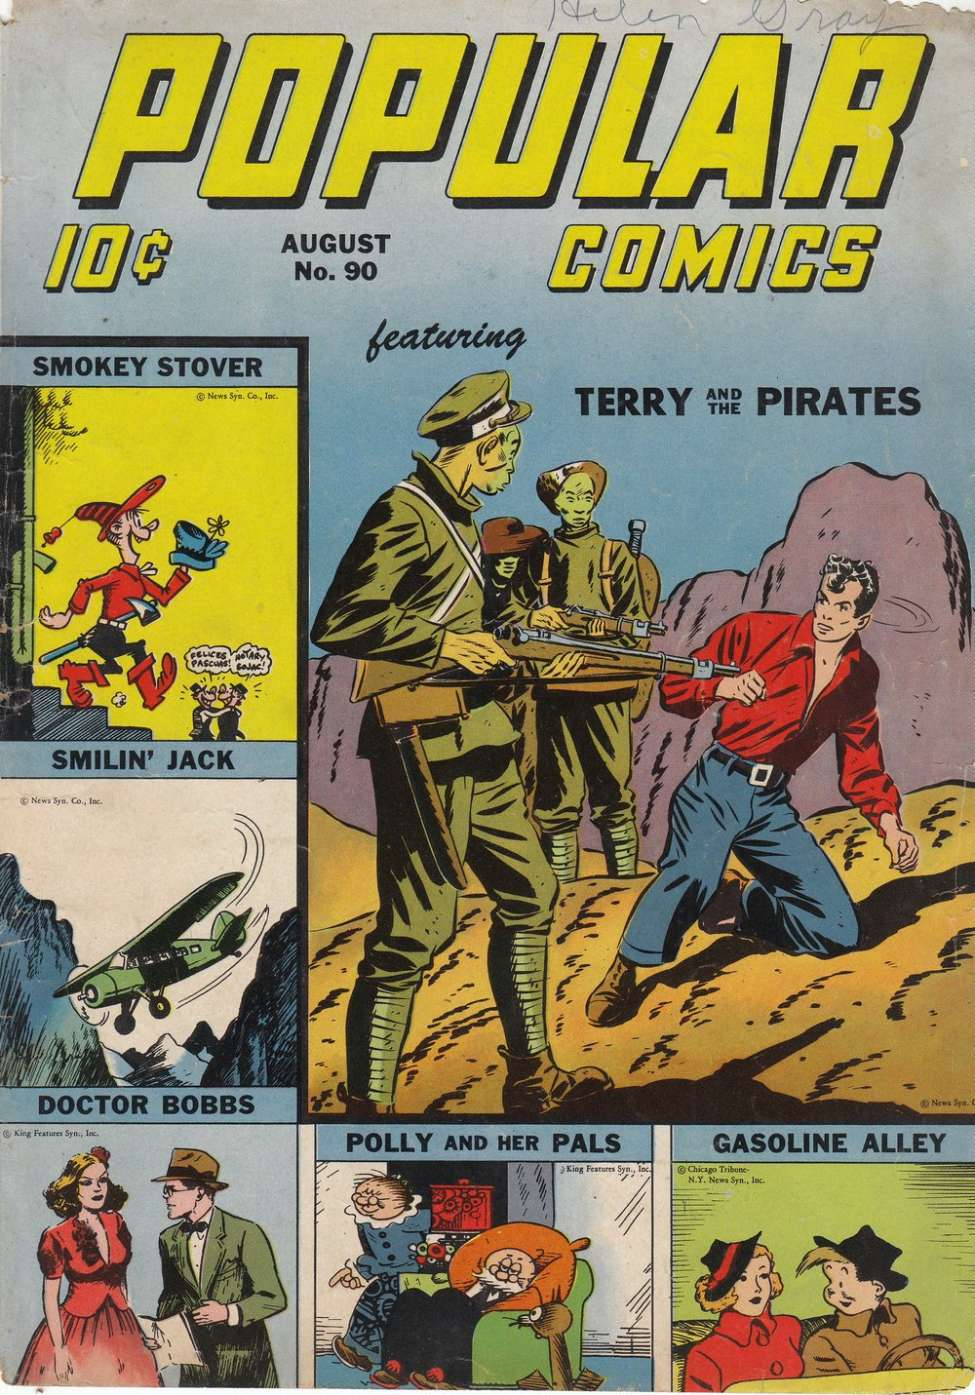 Comic Book Cover For Popular Comics #90